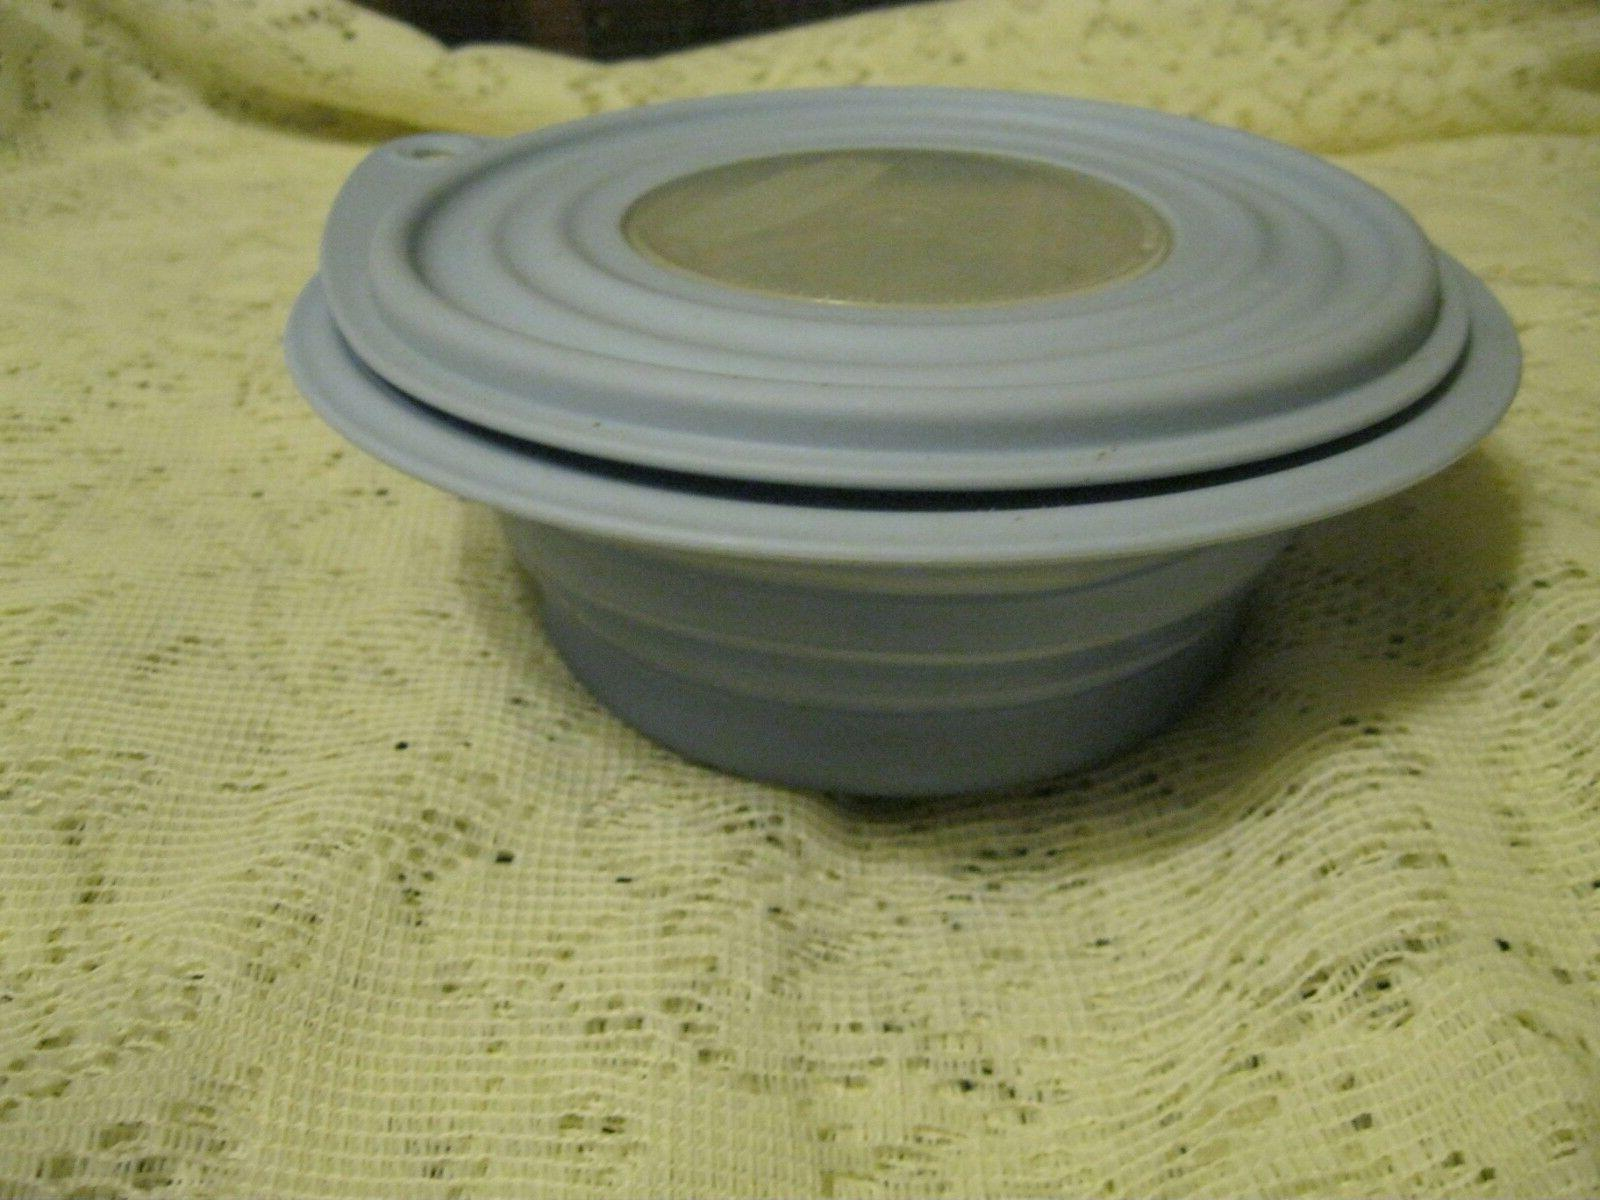 Rubbermaid Bowl Lid 2.5 Cup